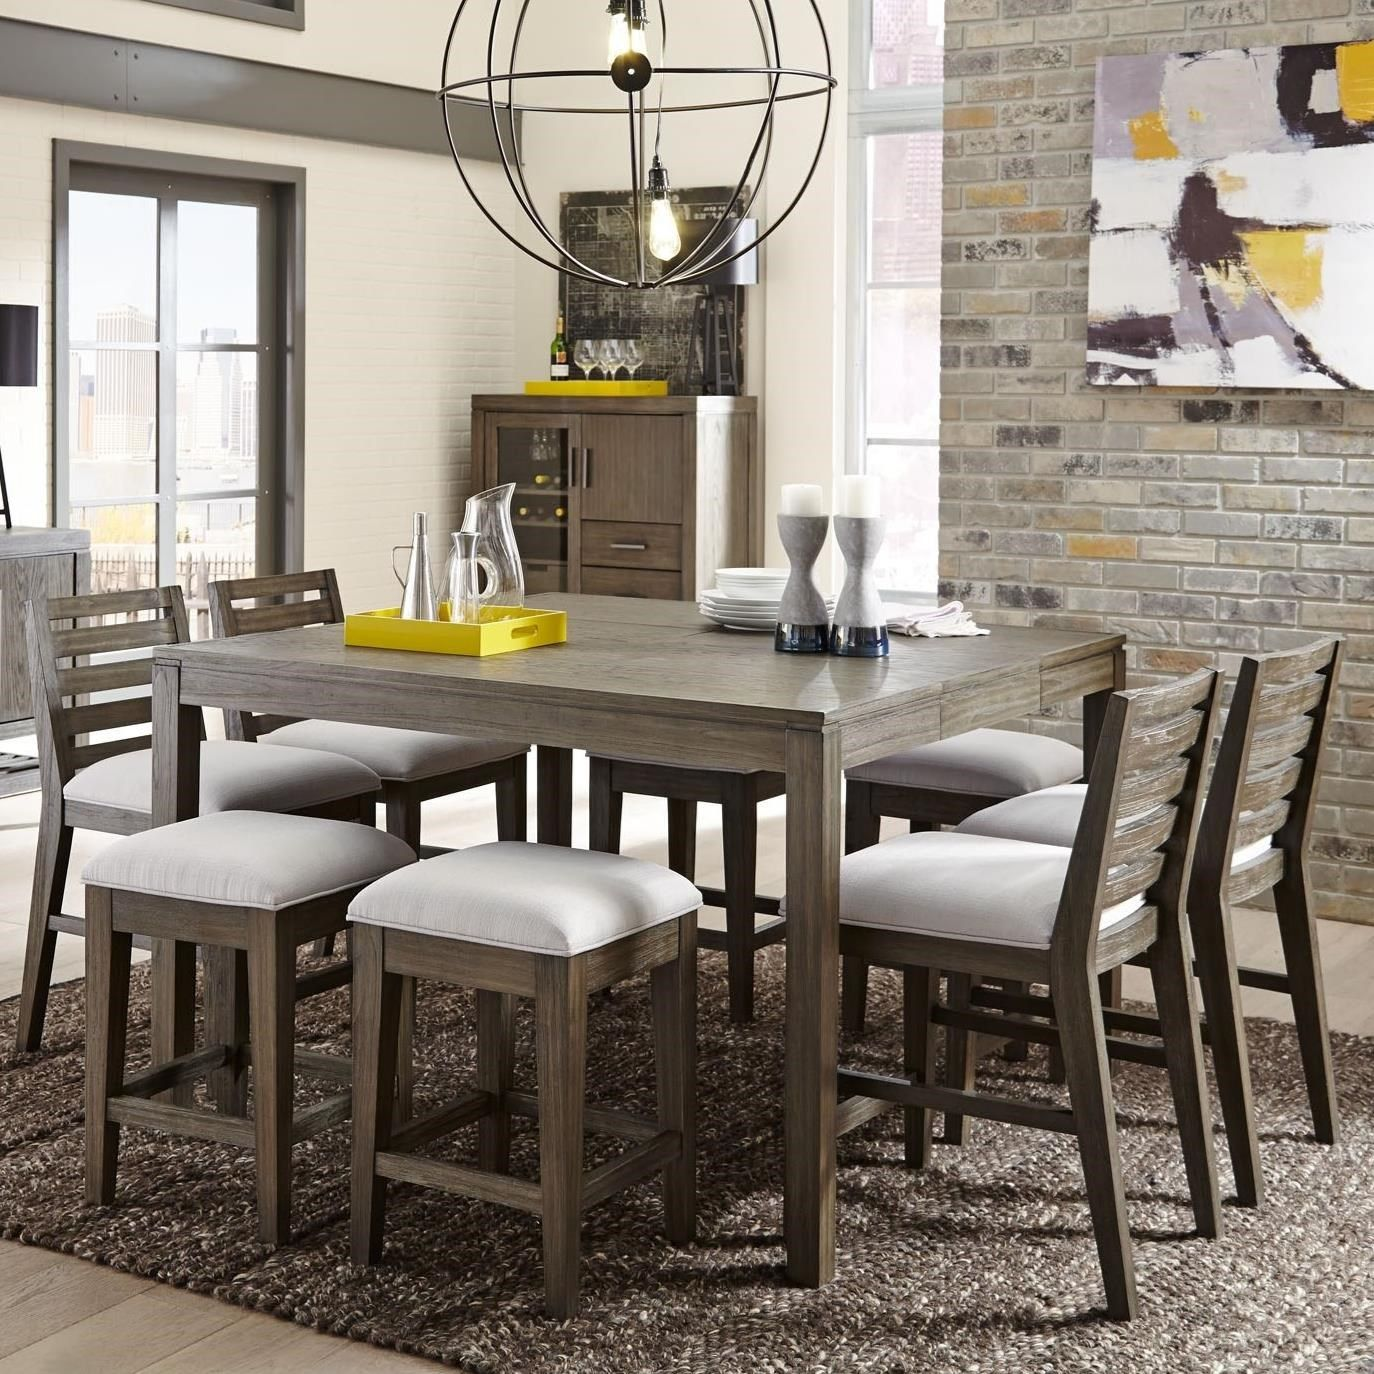 Bravo 9 Piece Counter Height Dining Set By Casana Kitchen Table